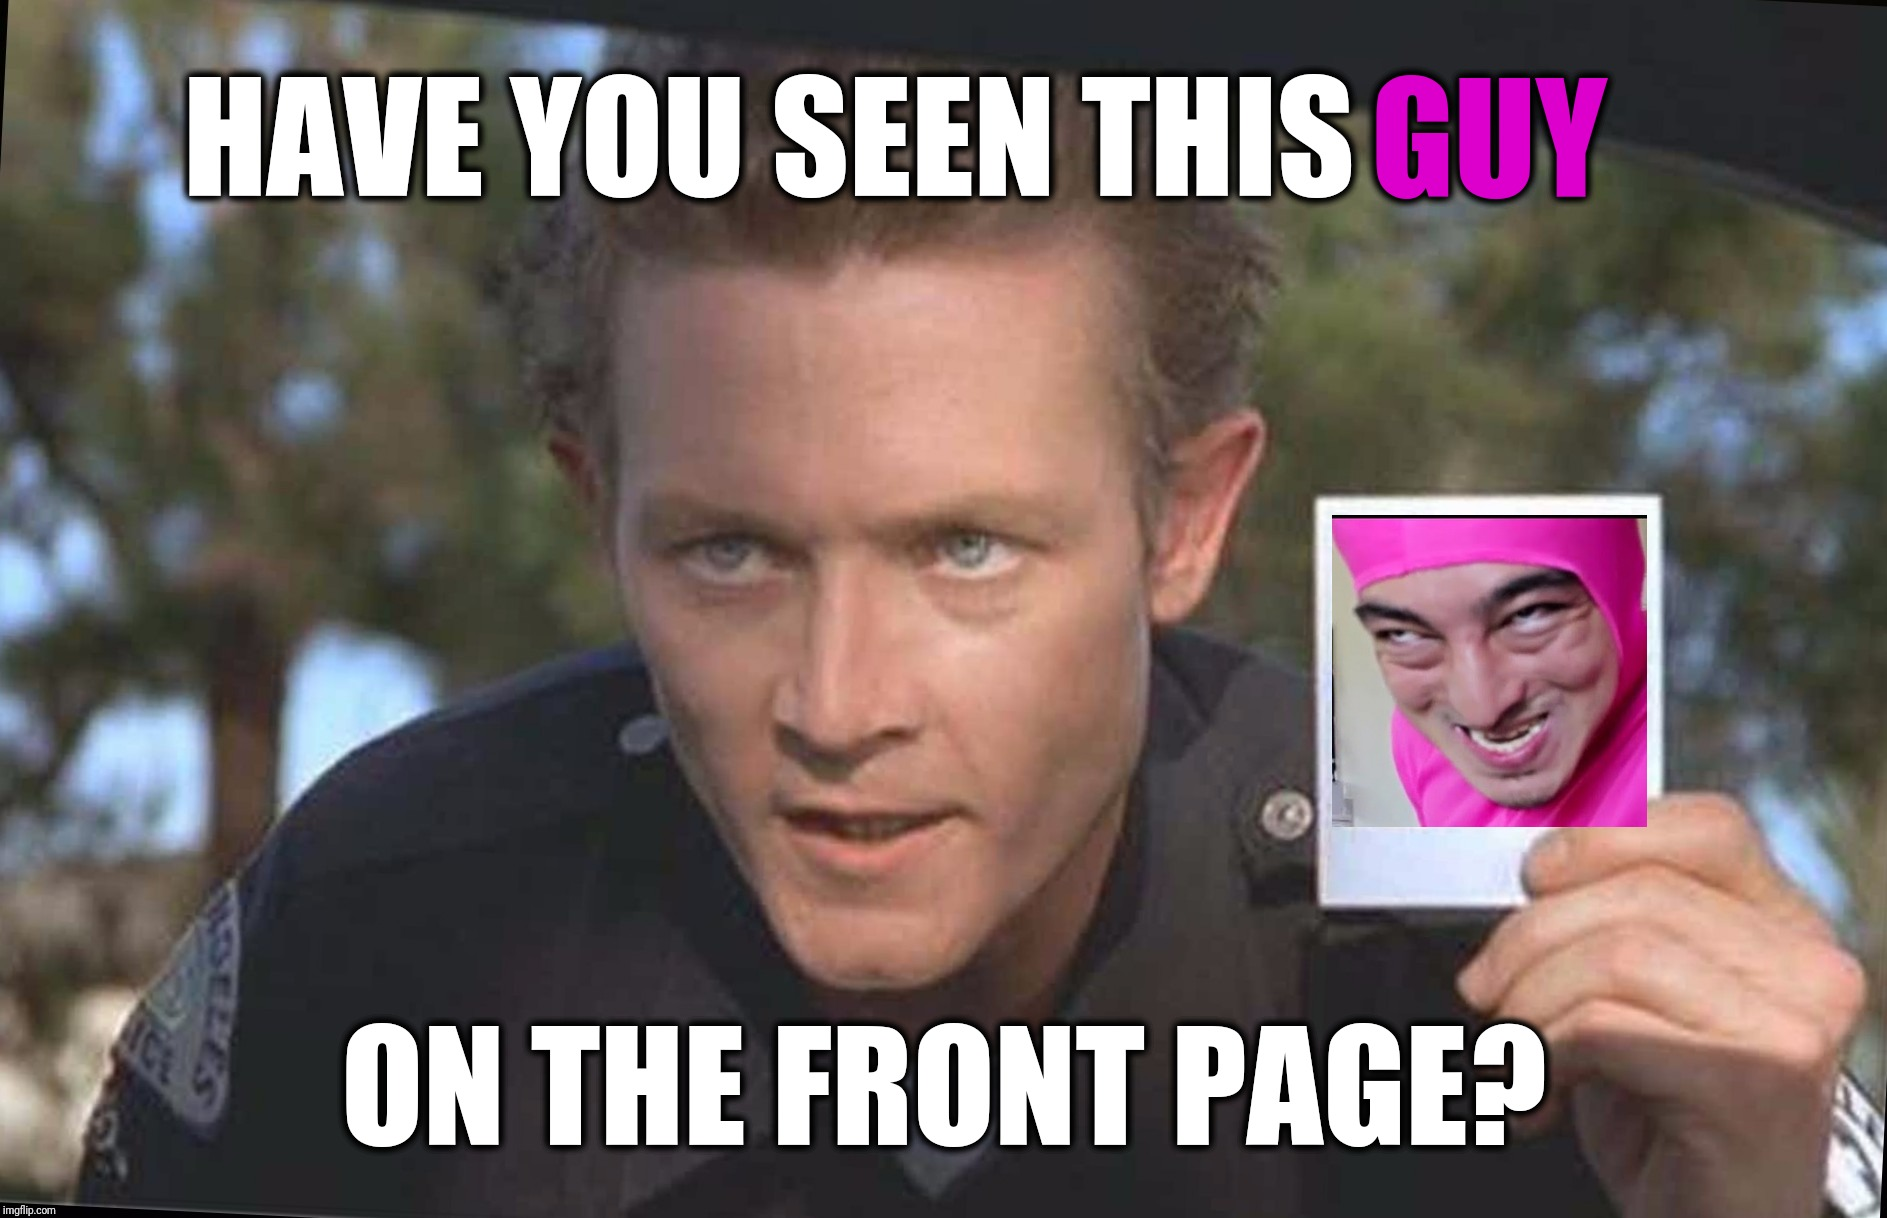 Have You Seen This Boy | ON THE FRONT PAGE? HAVE YOU SEEN THIS GUY | image tagged in have you seen this boy | made w/ Imgflip meme maker